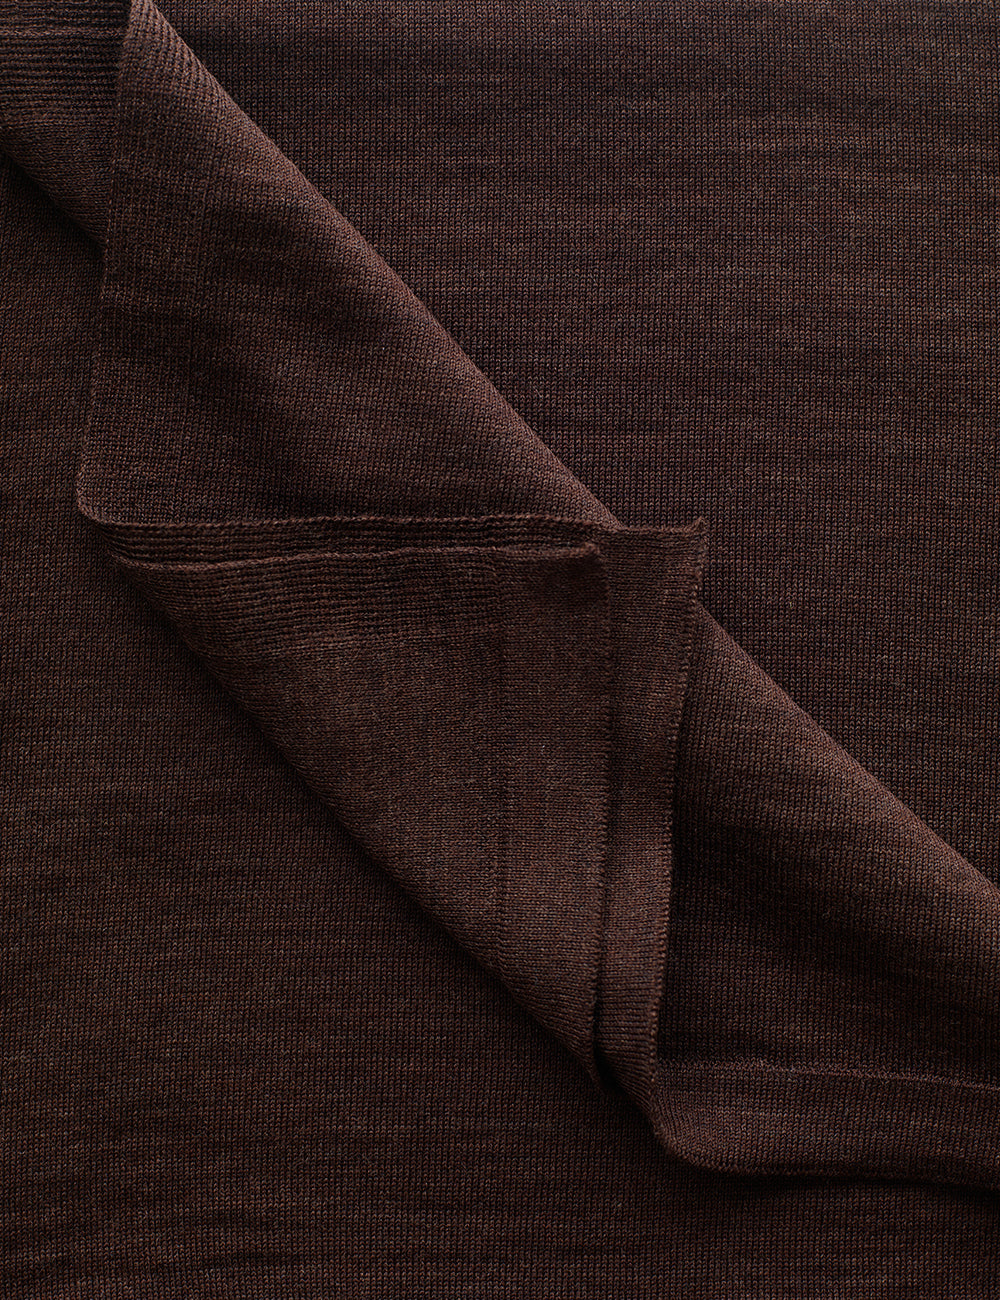 Australian Superfine Merino Wrap Travel Size - Chocolate Marle